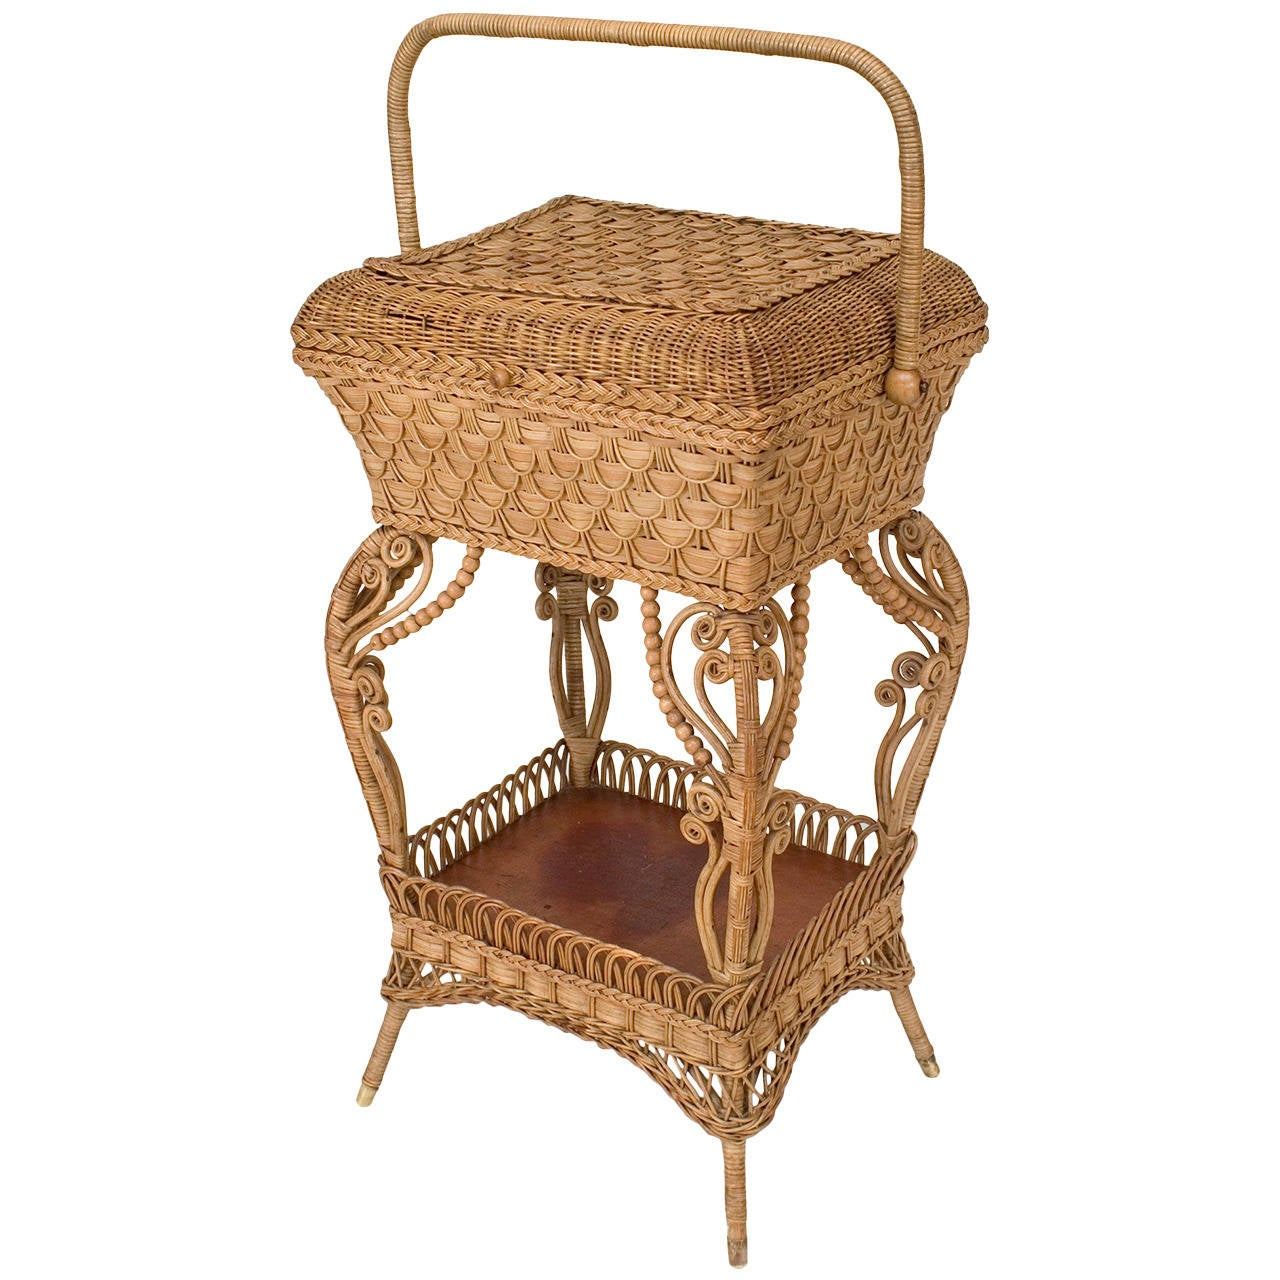 heywood wakefield wicker chairs revolving wire chair late 19th c american sewing table by